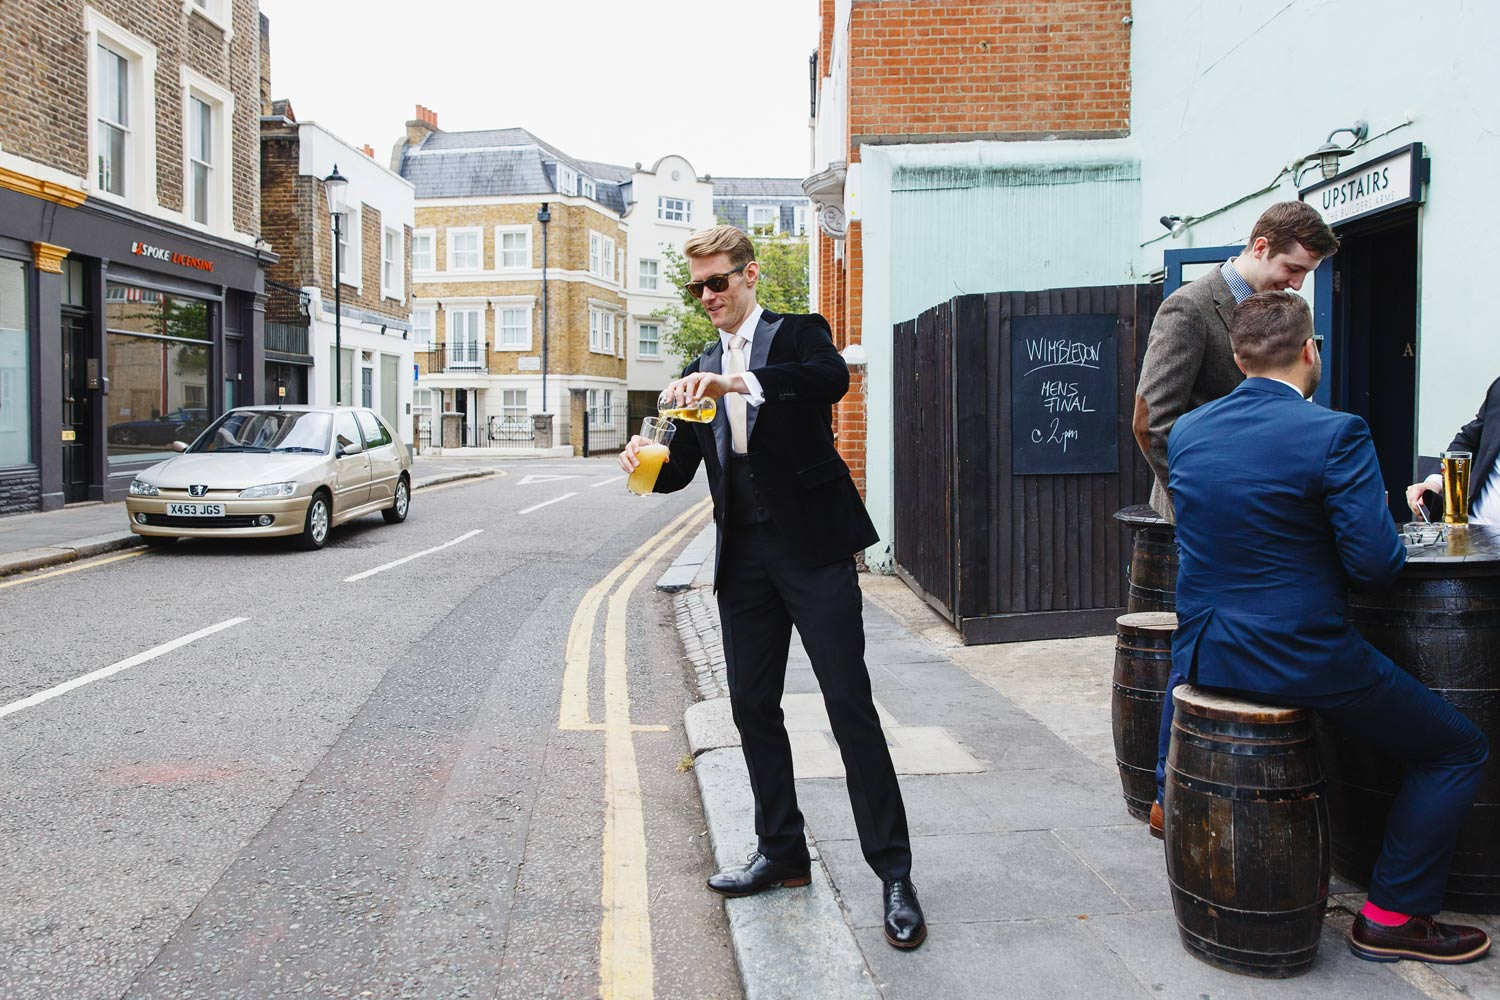 A groom pours a beer at the Roof Gardens in Kensington - London wedding photographer